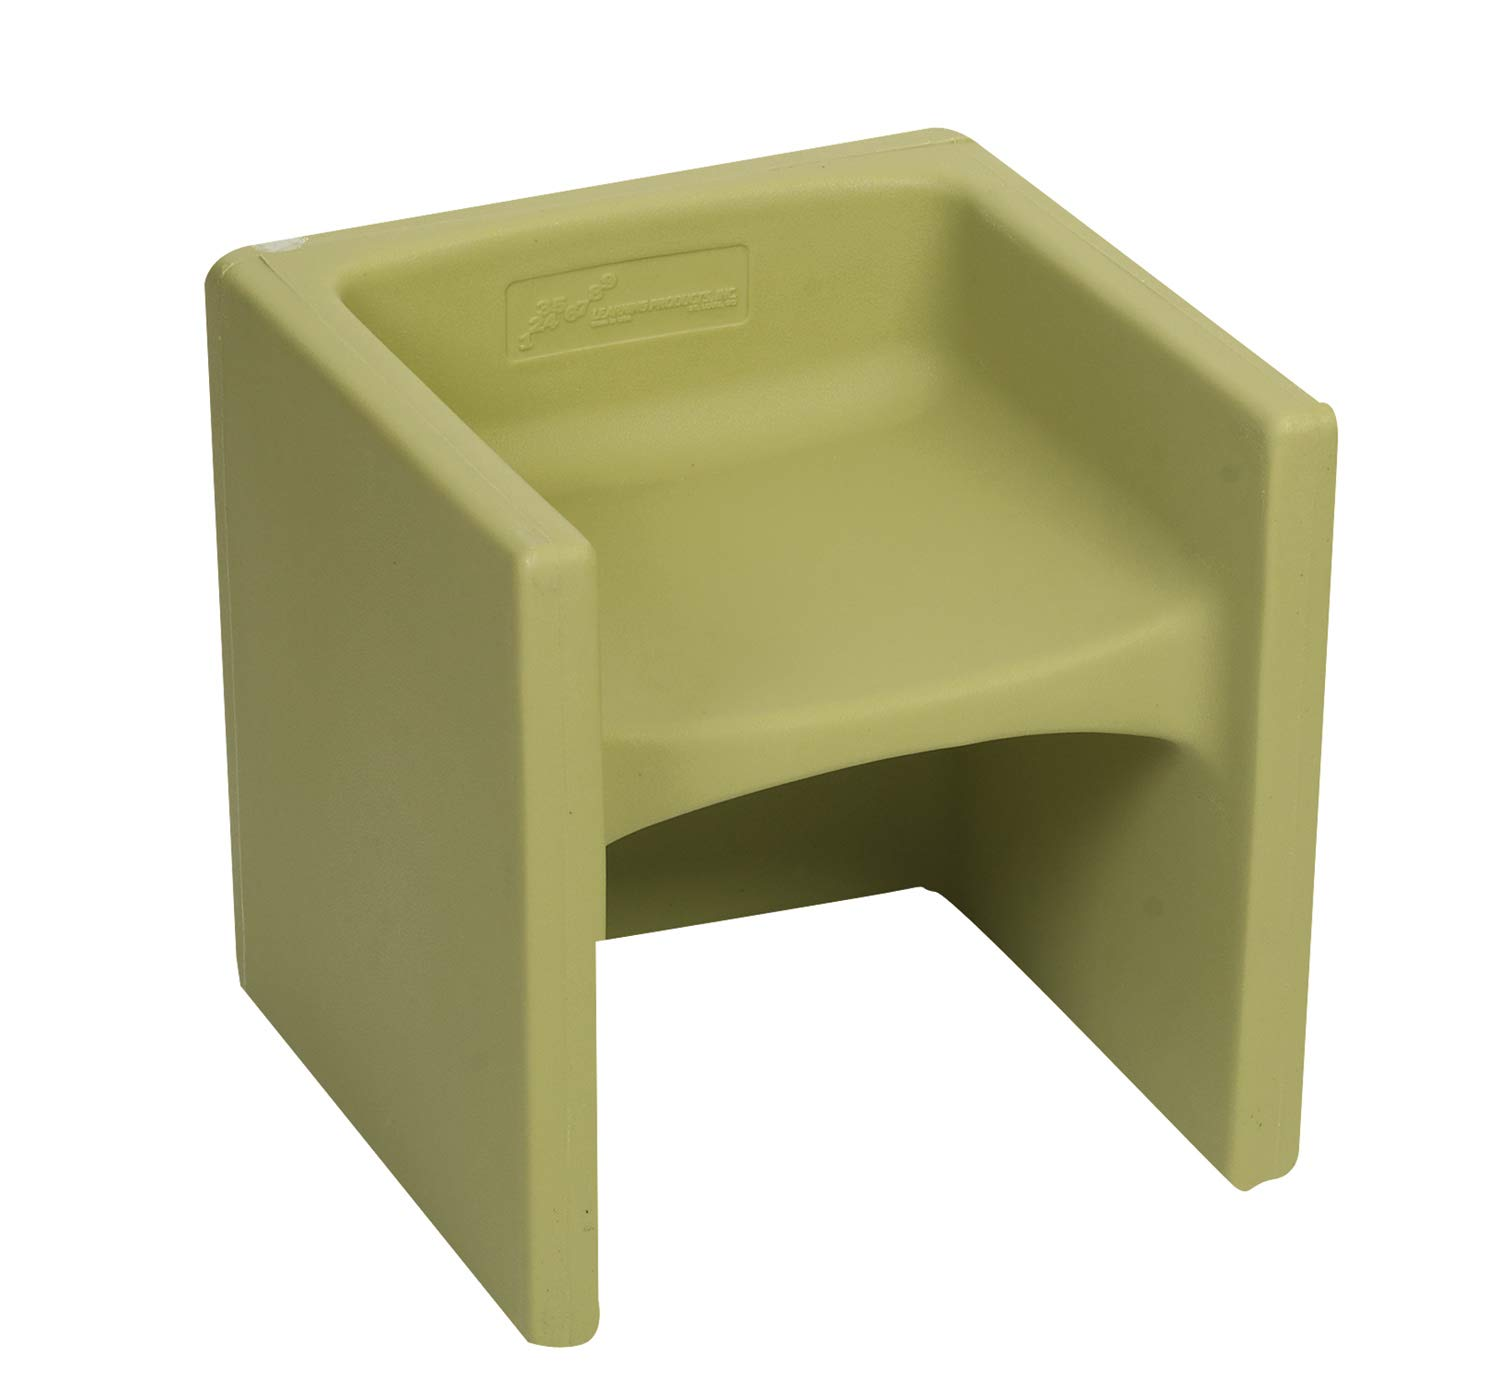 Children's Factory Cube Chair for Kids, Flexible Seating Classroom Furniture for Daycare/Playroom/Homeschool, Indoor/Outdoor Toddler Chair, Fern